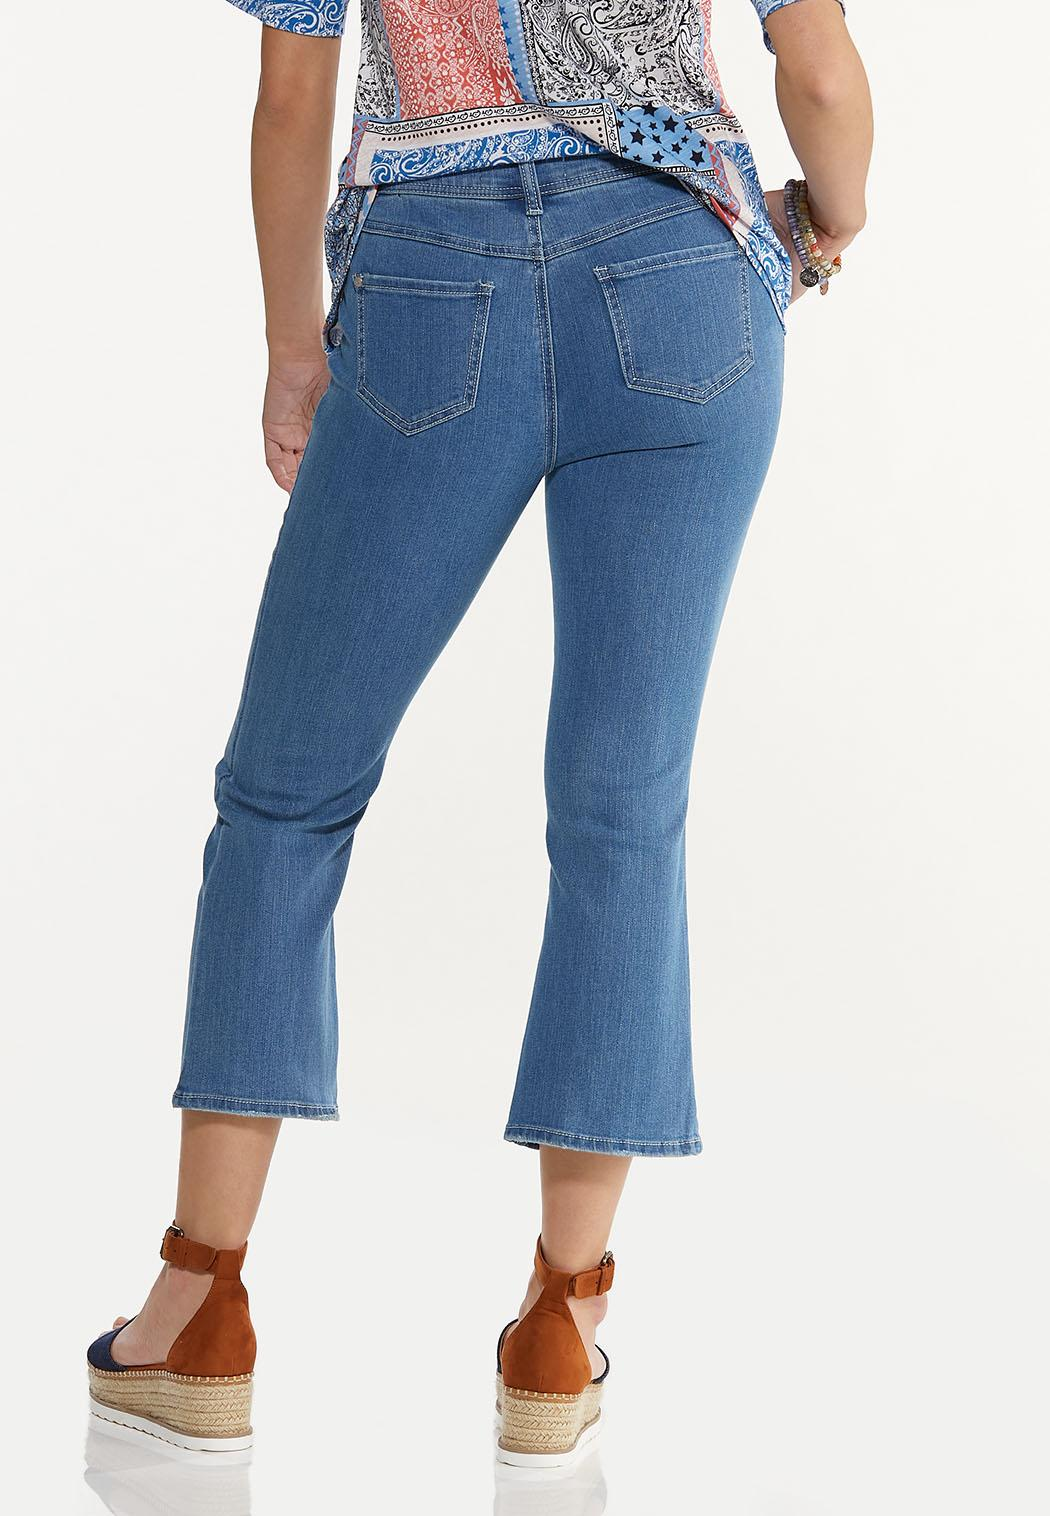 Cropped Flare Jeans (Item #44587476)